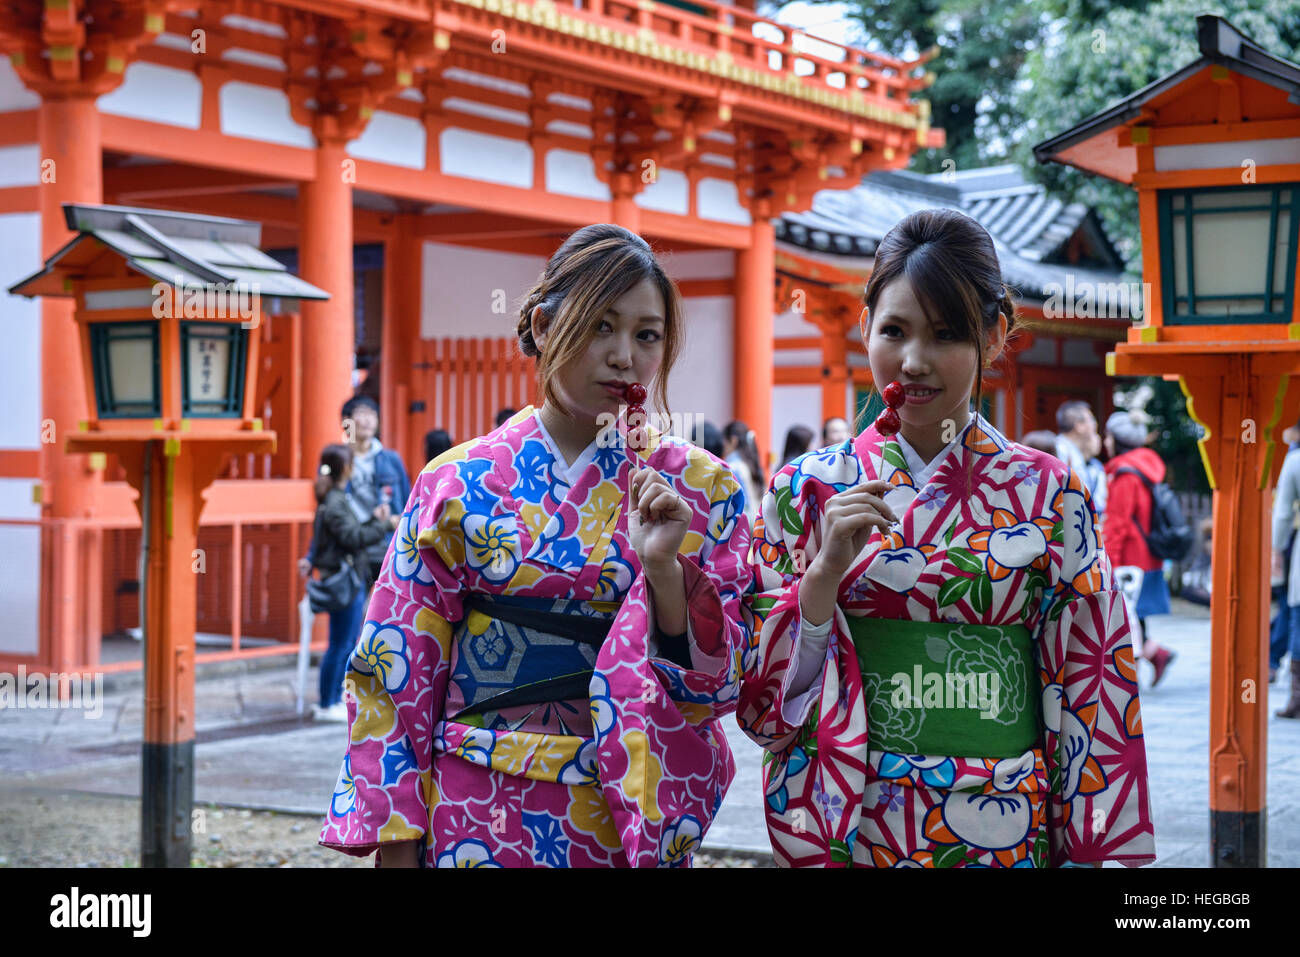 Girls with lollipops, Kyoto, Japan - Stock Image